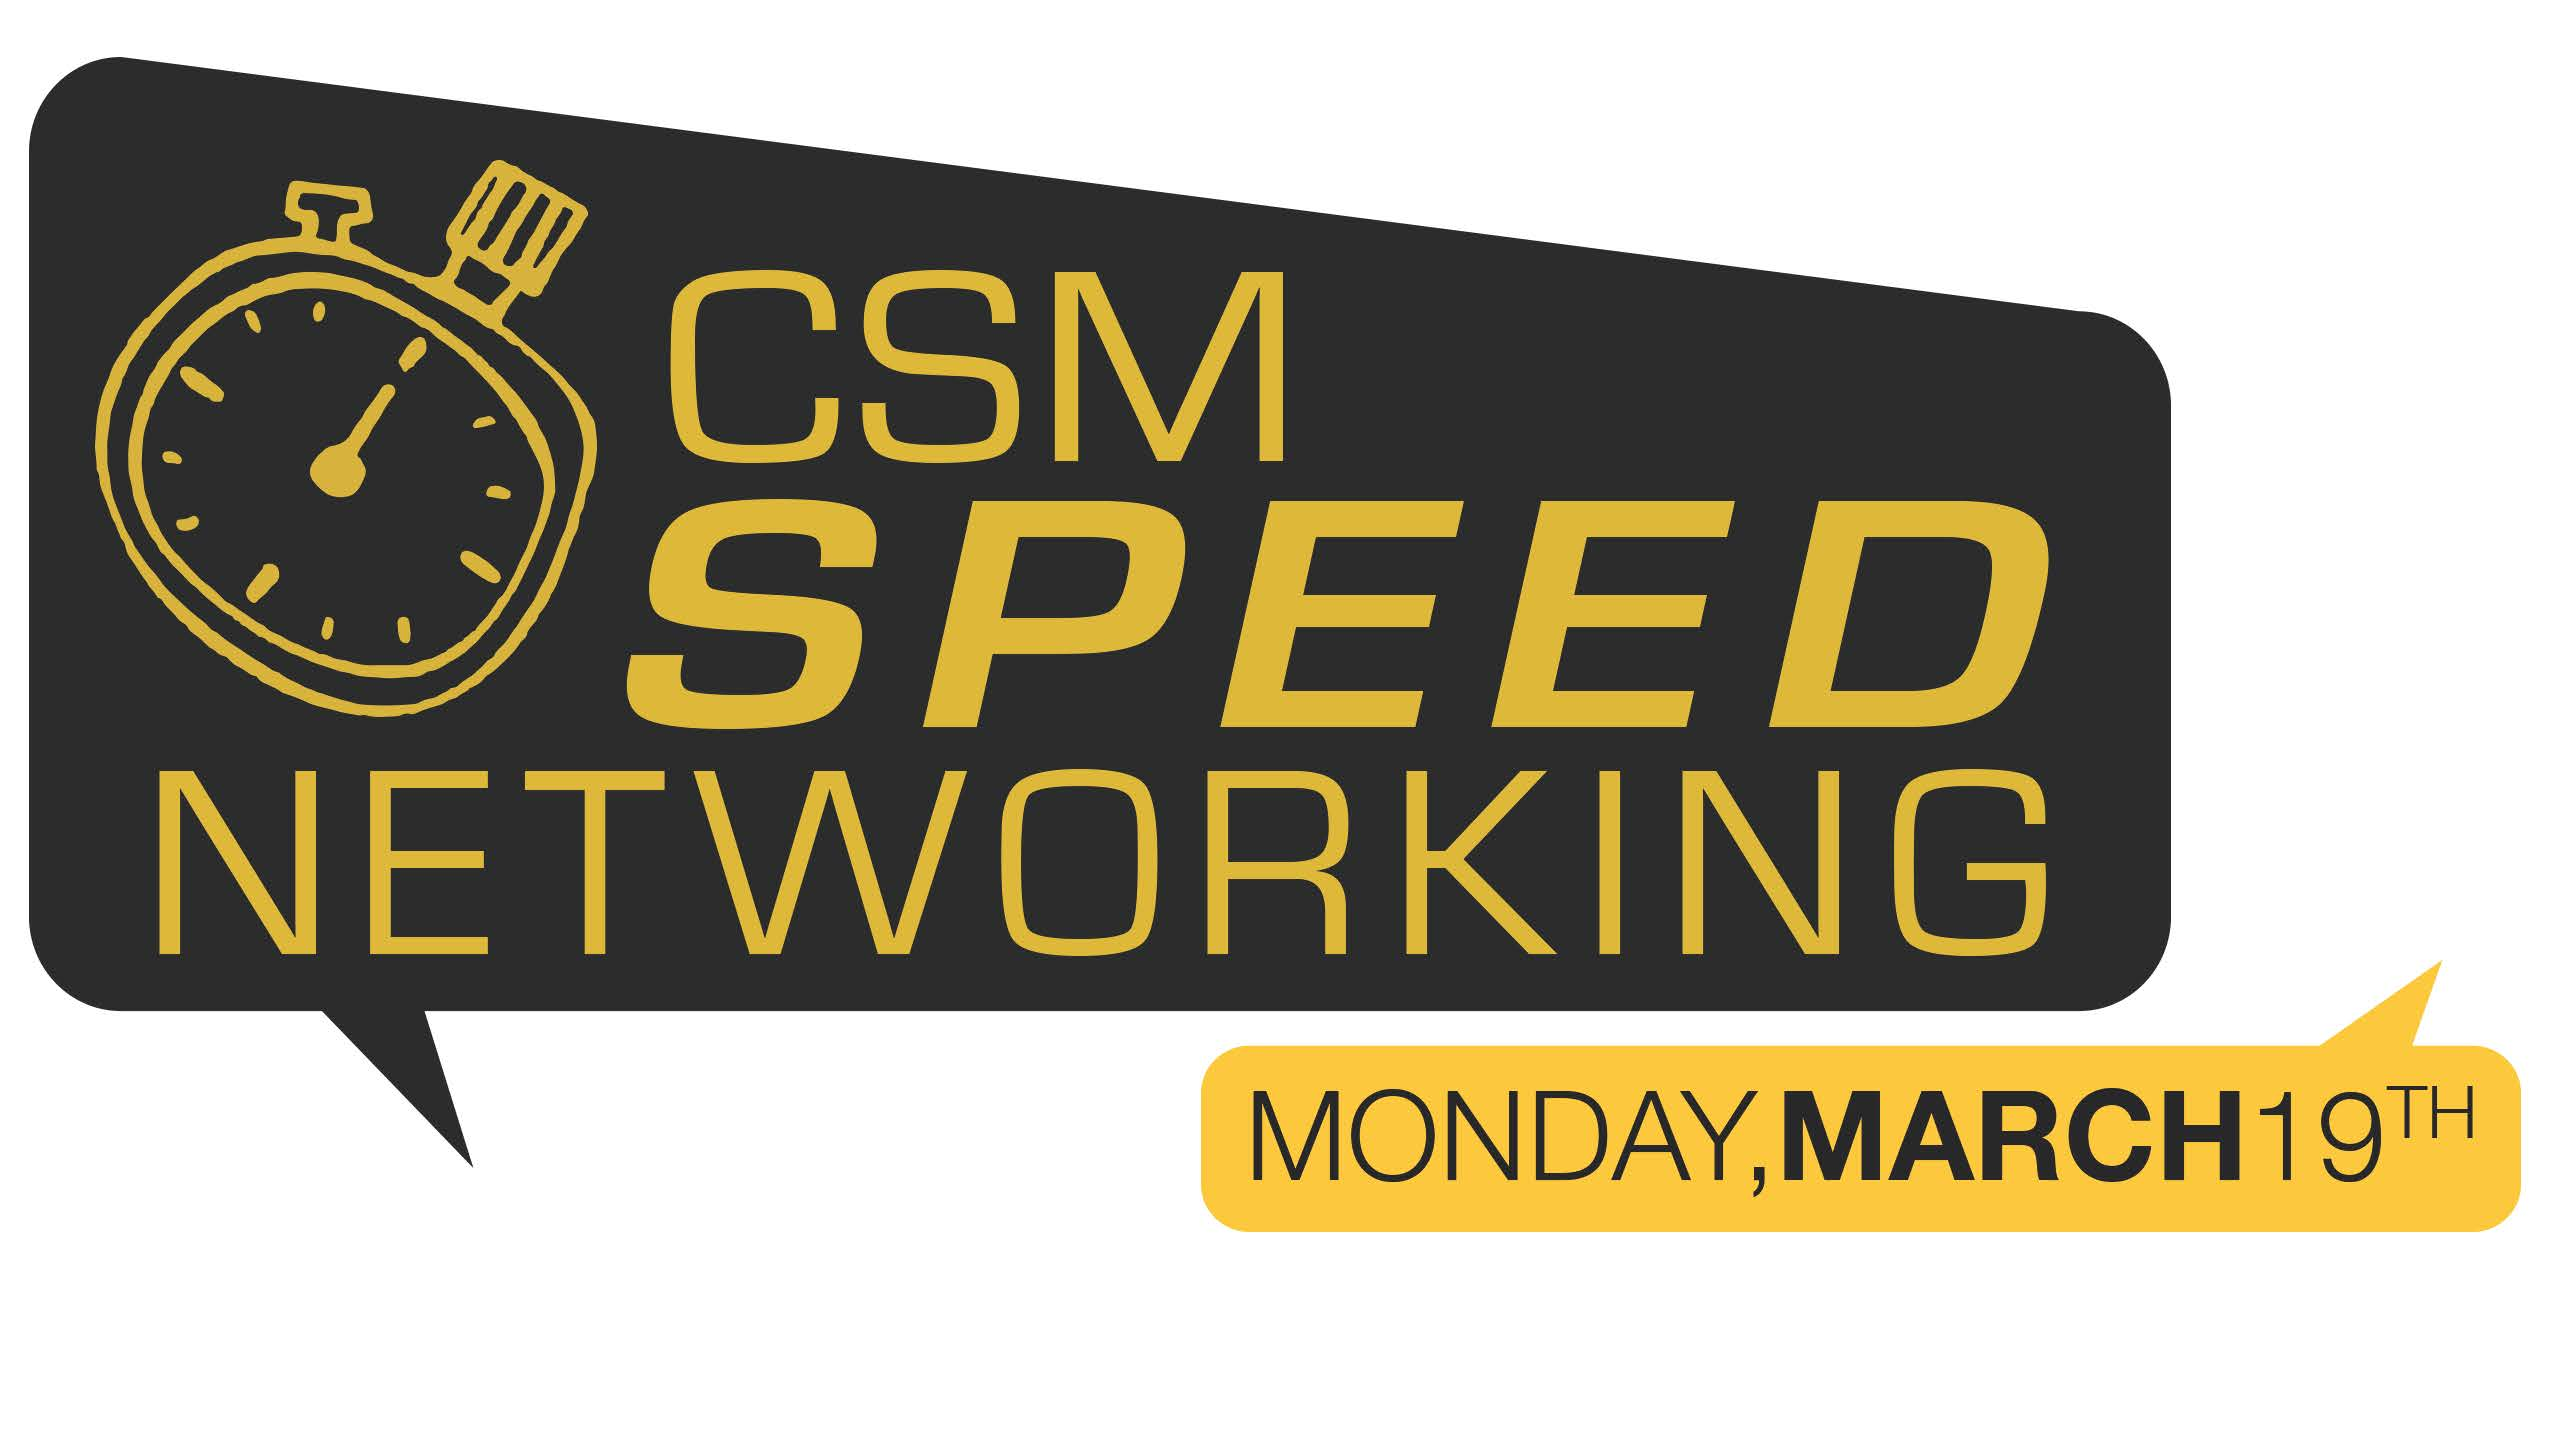 KSU | College of Science and Mathematics - CSM Speed Networking